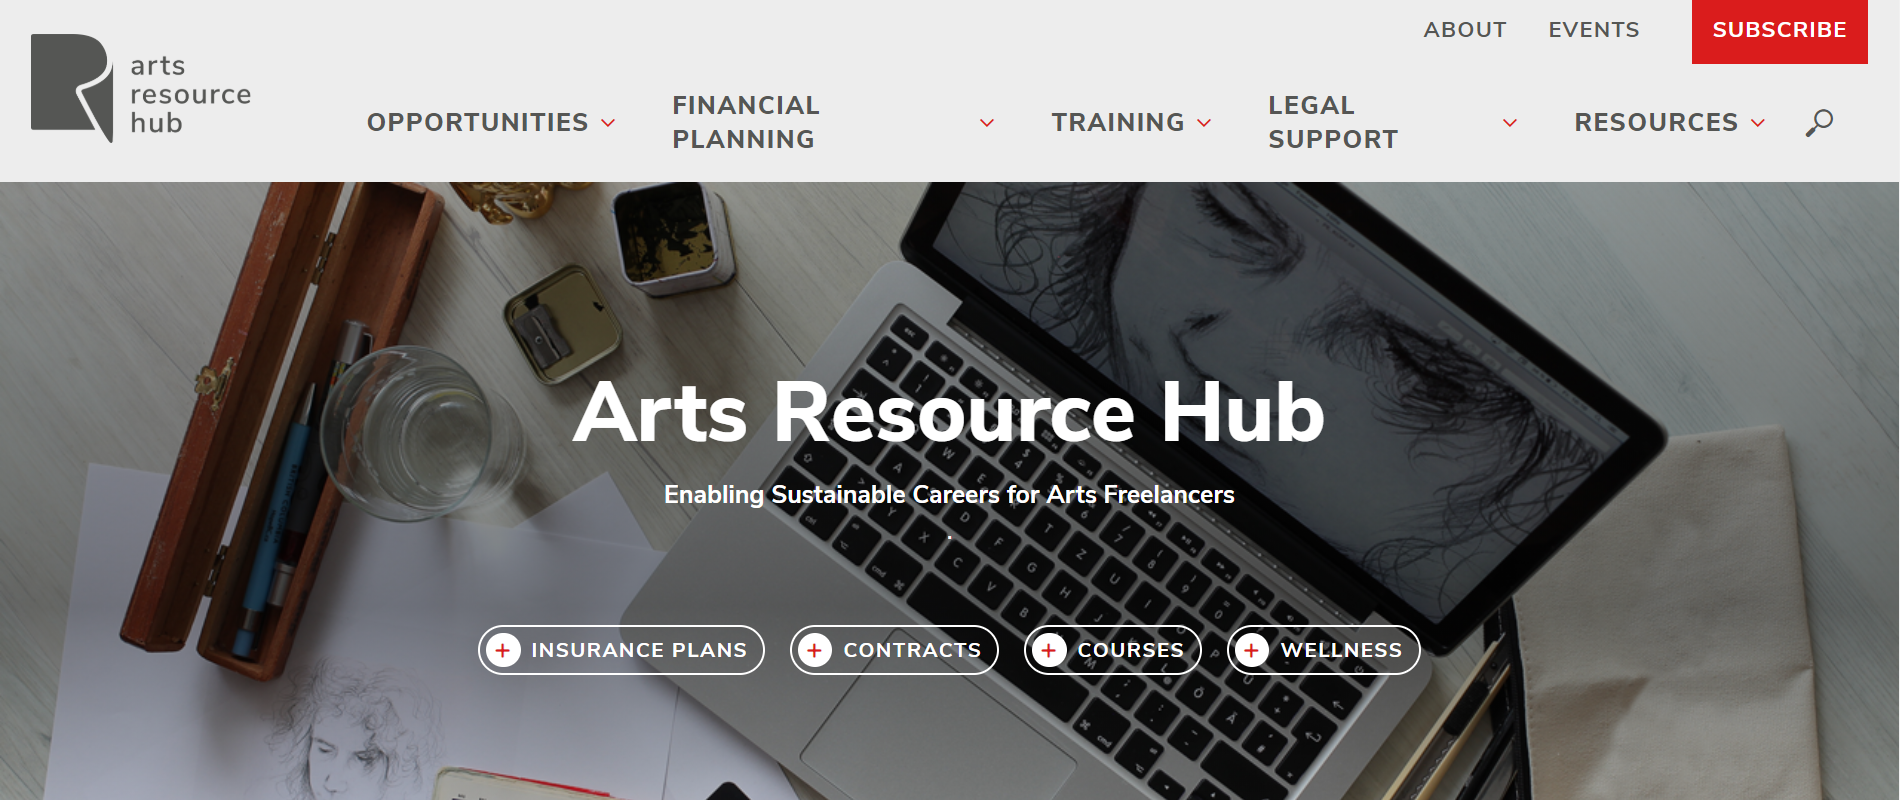 National Arts Council's Arts Resource Hub is Now Live